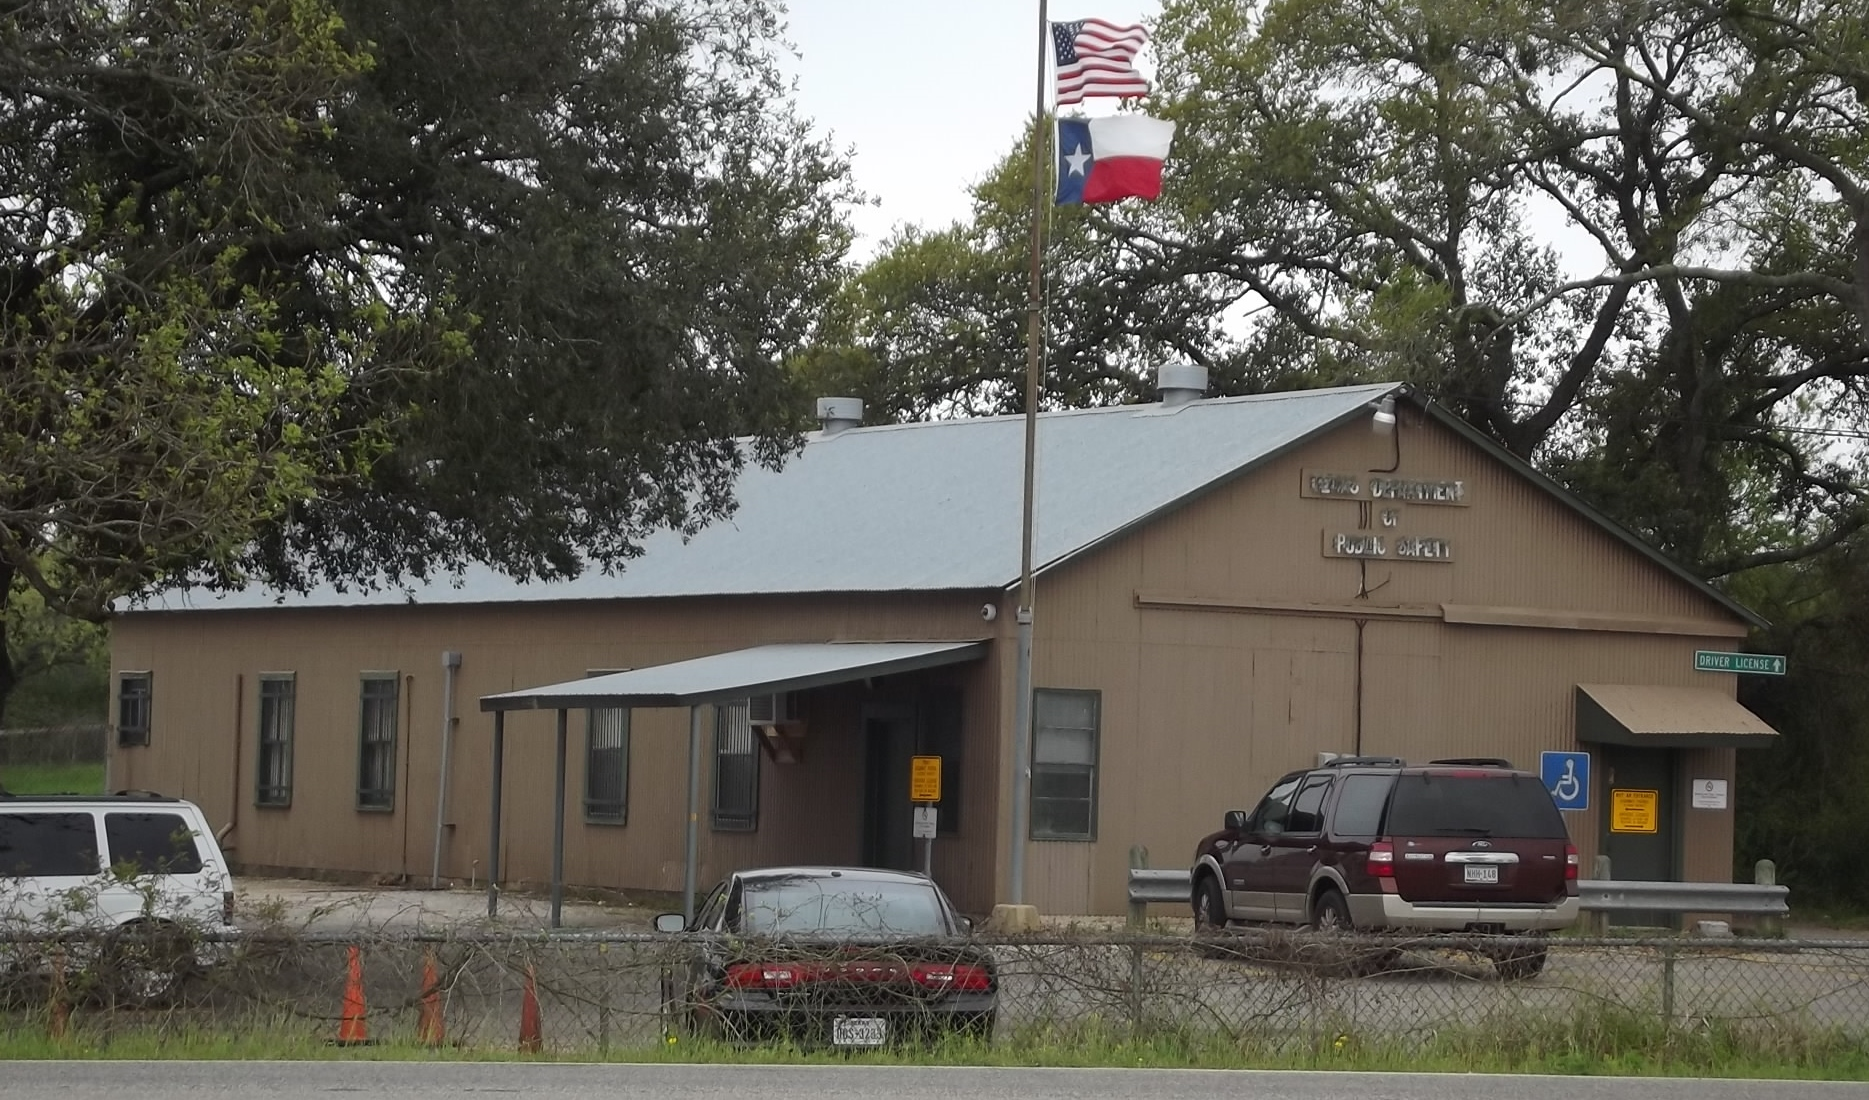 Waller County Dept of Public Safety